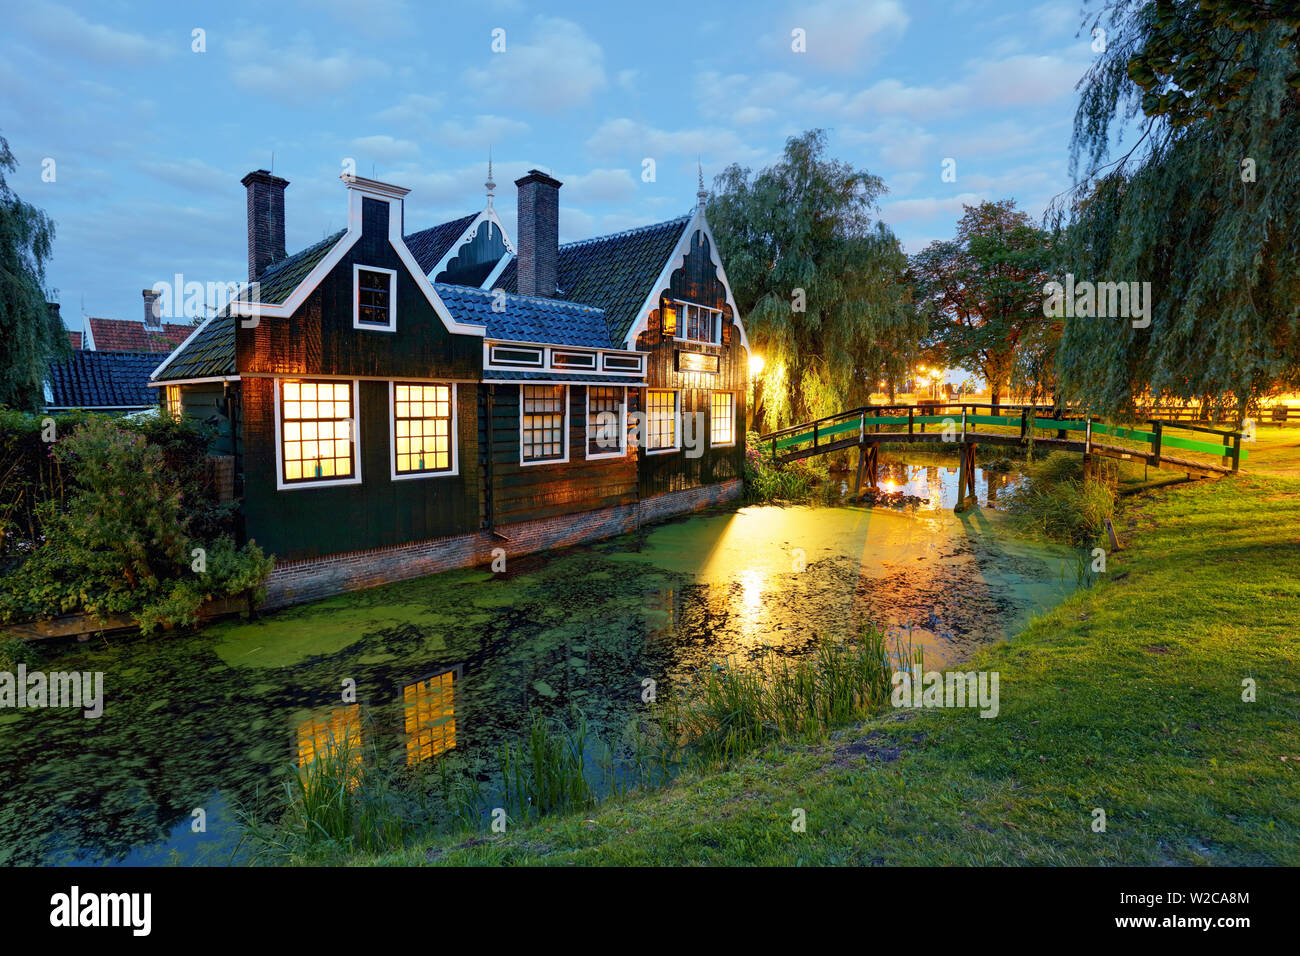 Traditional house at the historic village of Zaanse Schans, Netherlands Stock Photo